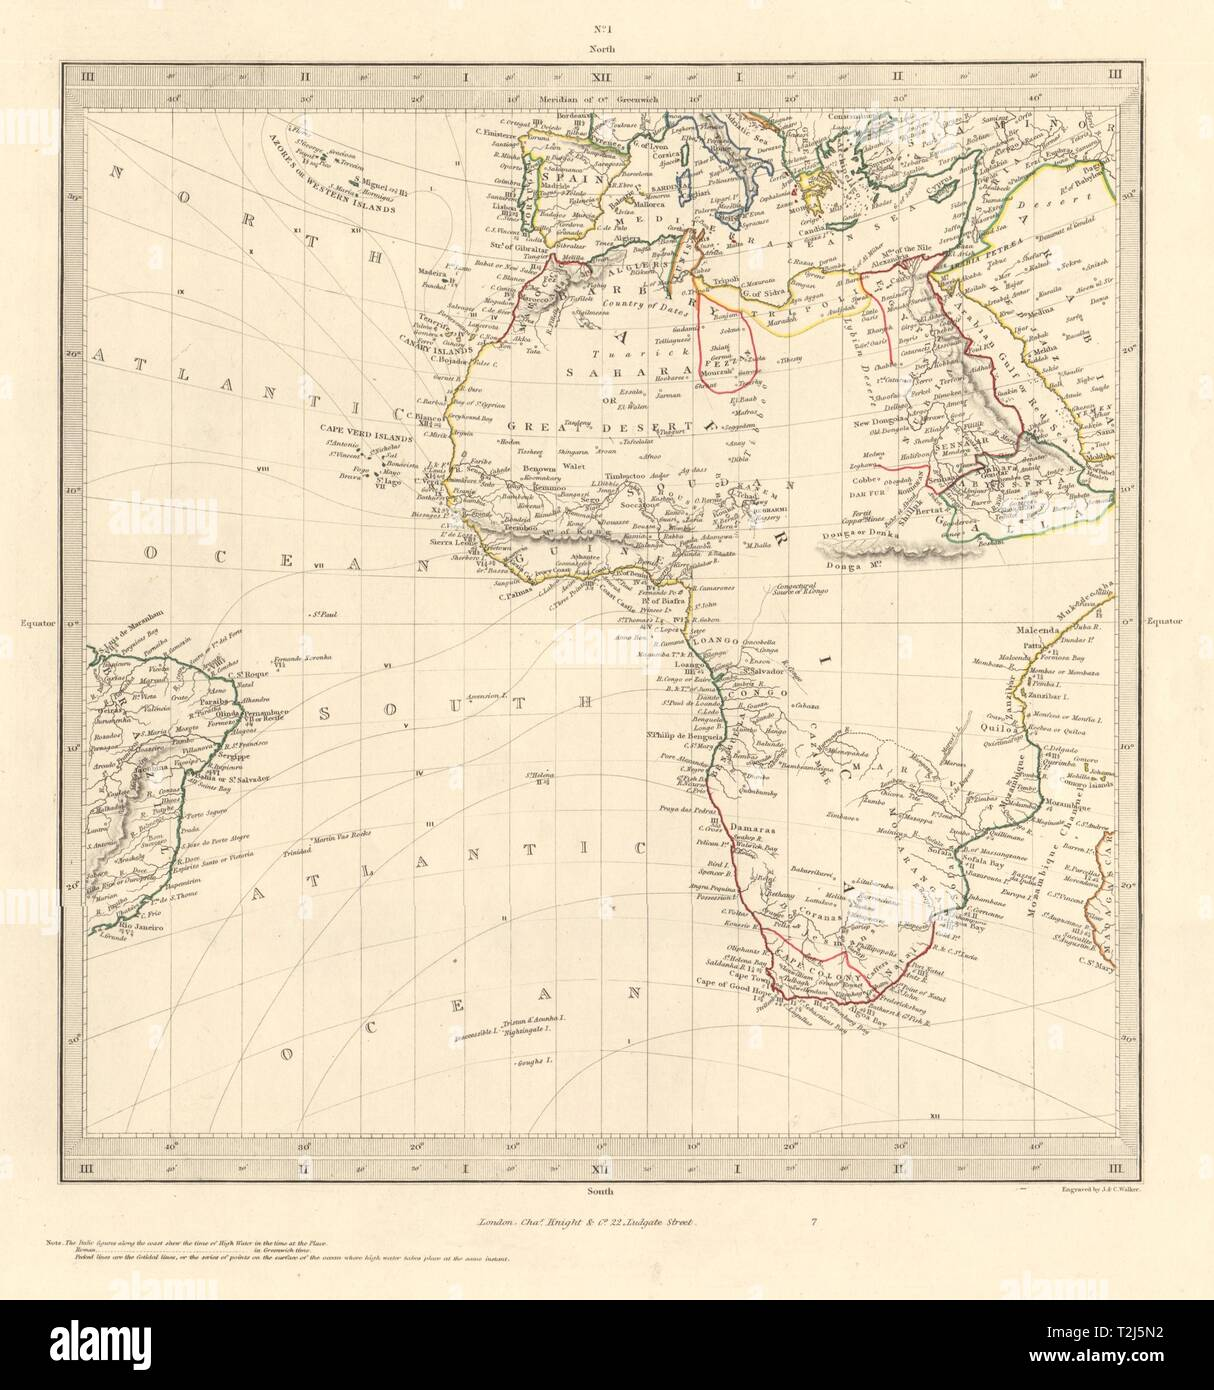 AFRICA South Europe Brazil Gnomonic Projection. Mountains of ...